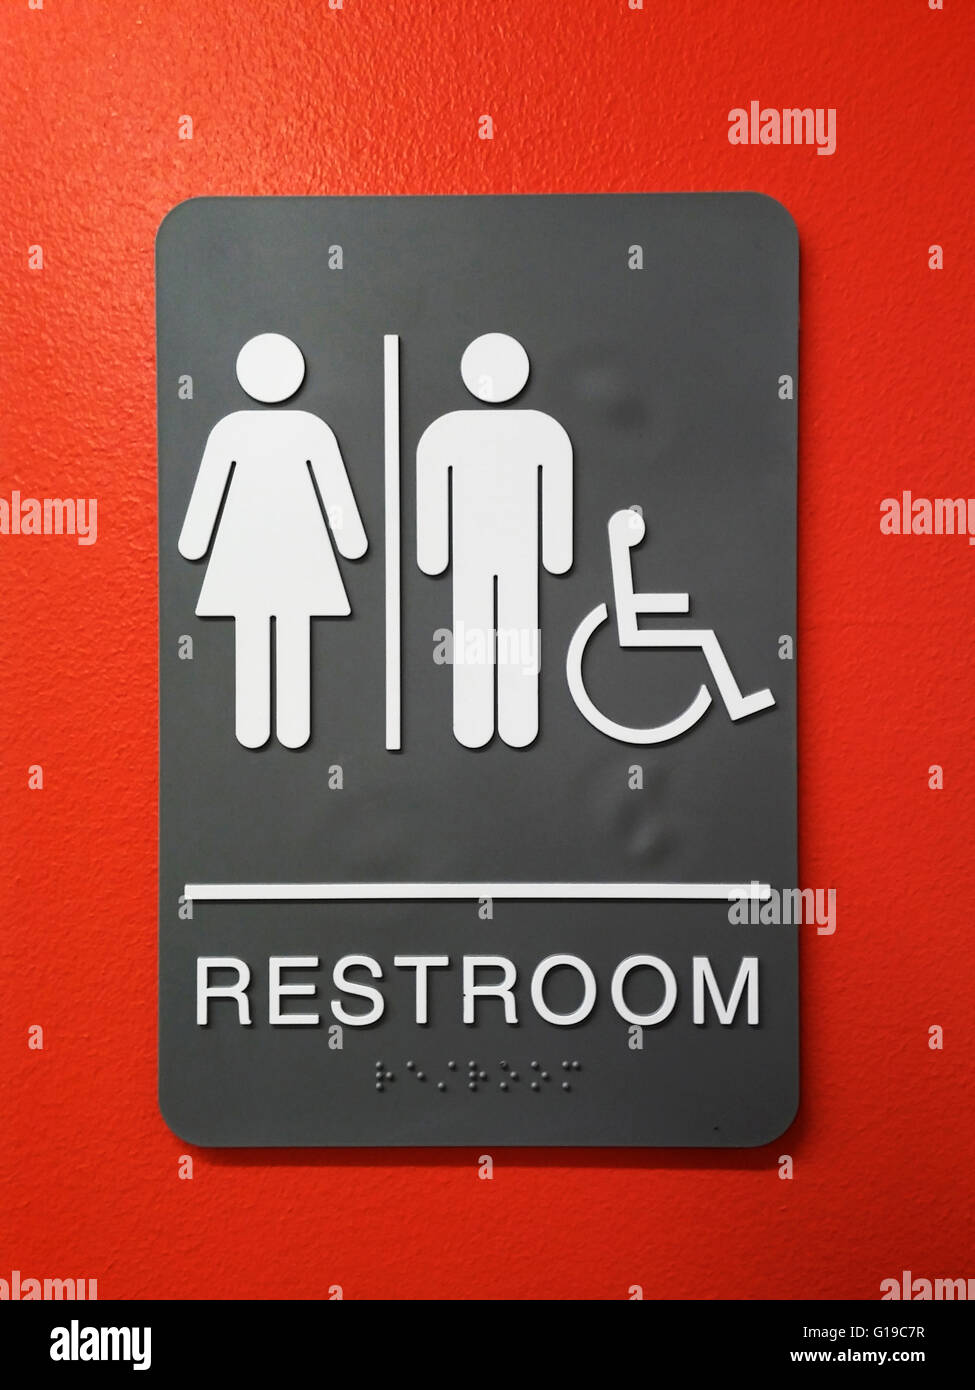 Bathroom Signs Nyc unisex bathroom sign in new york on friday, may 6, 2016